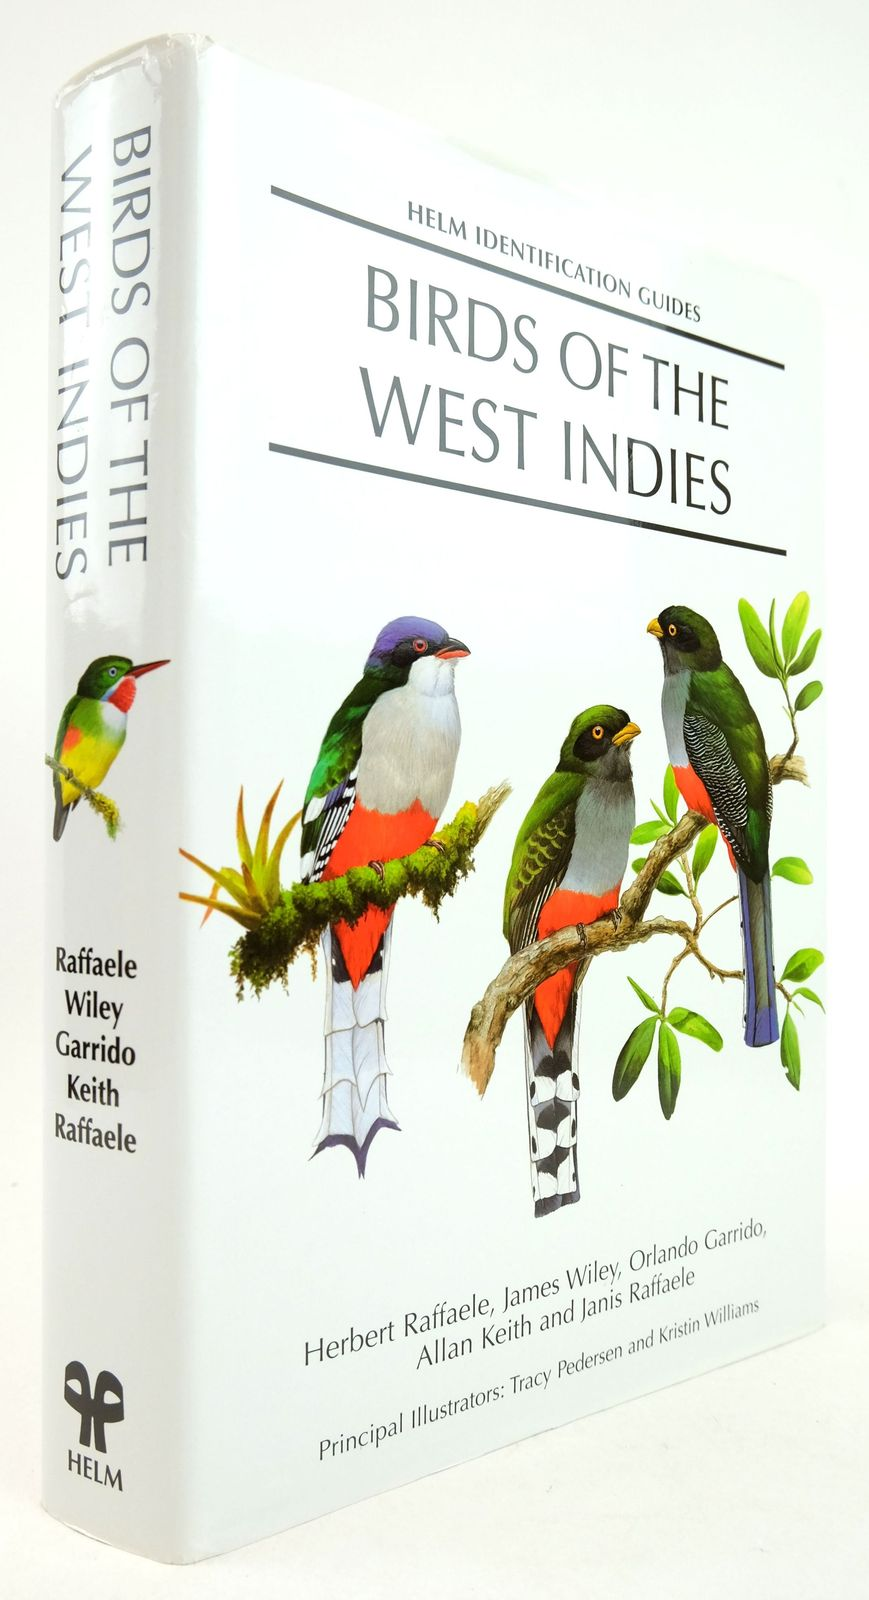 Photo of BIRDS OF THE WEST INDIES (HELM IDENTIFICATION GUIDES) written by Raffaele, Herbert Wiley, James Garrido, Orlando Keith, Allan Raffaele, Janis illustrated by Pedersen, Tracy Williams, Kristin published by Christopher Helm (STOCK CODE: 1819319)  for sale by Stella & Rose's Books